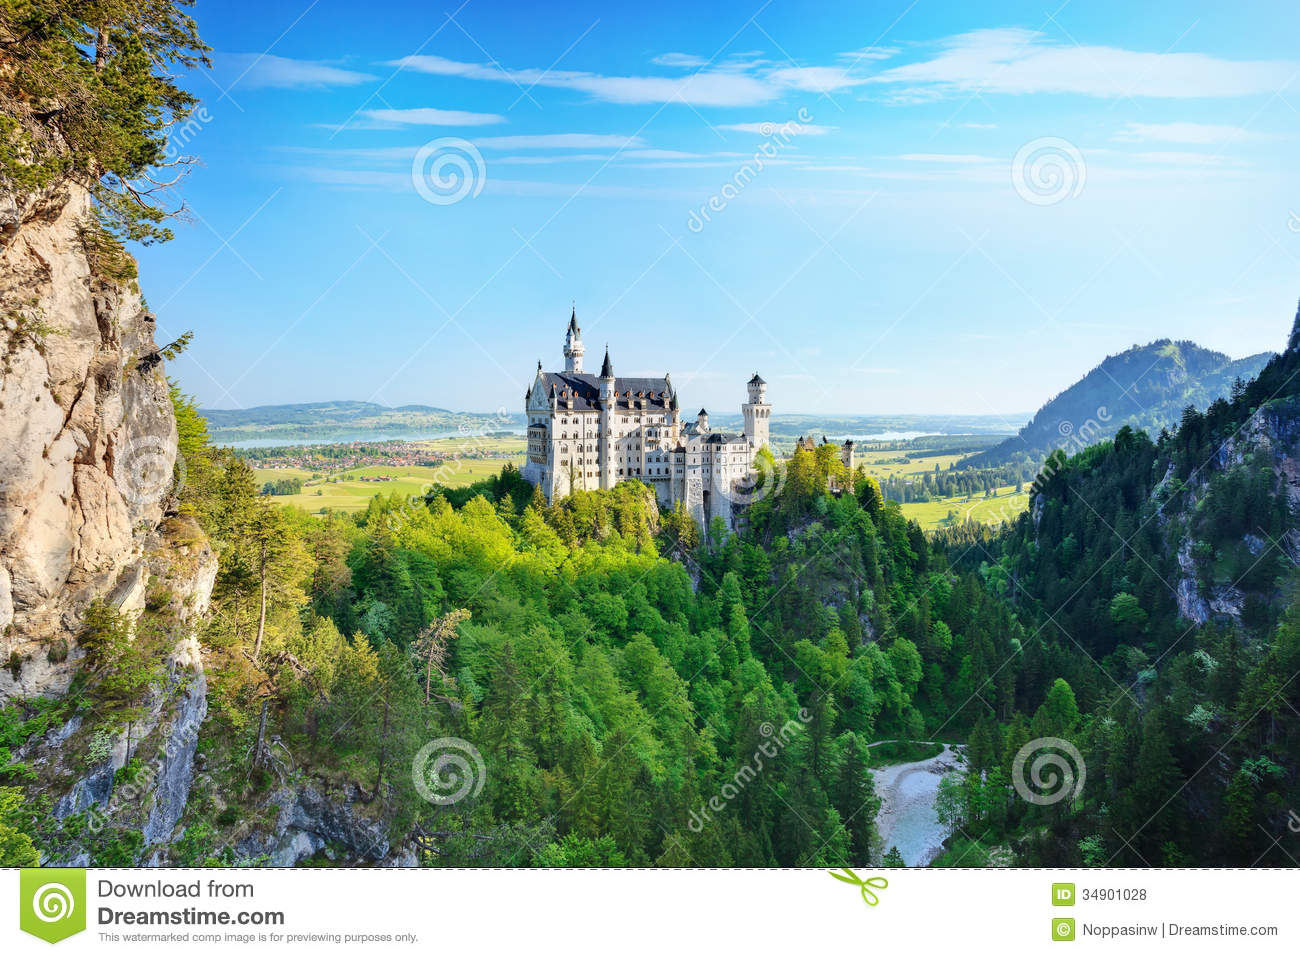 castle bavaria search results greencheese